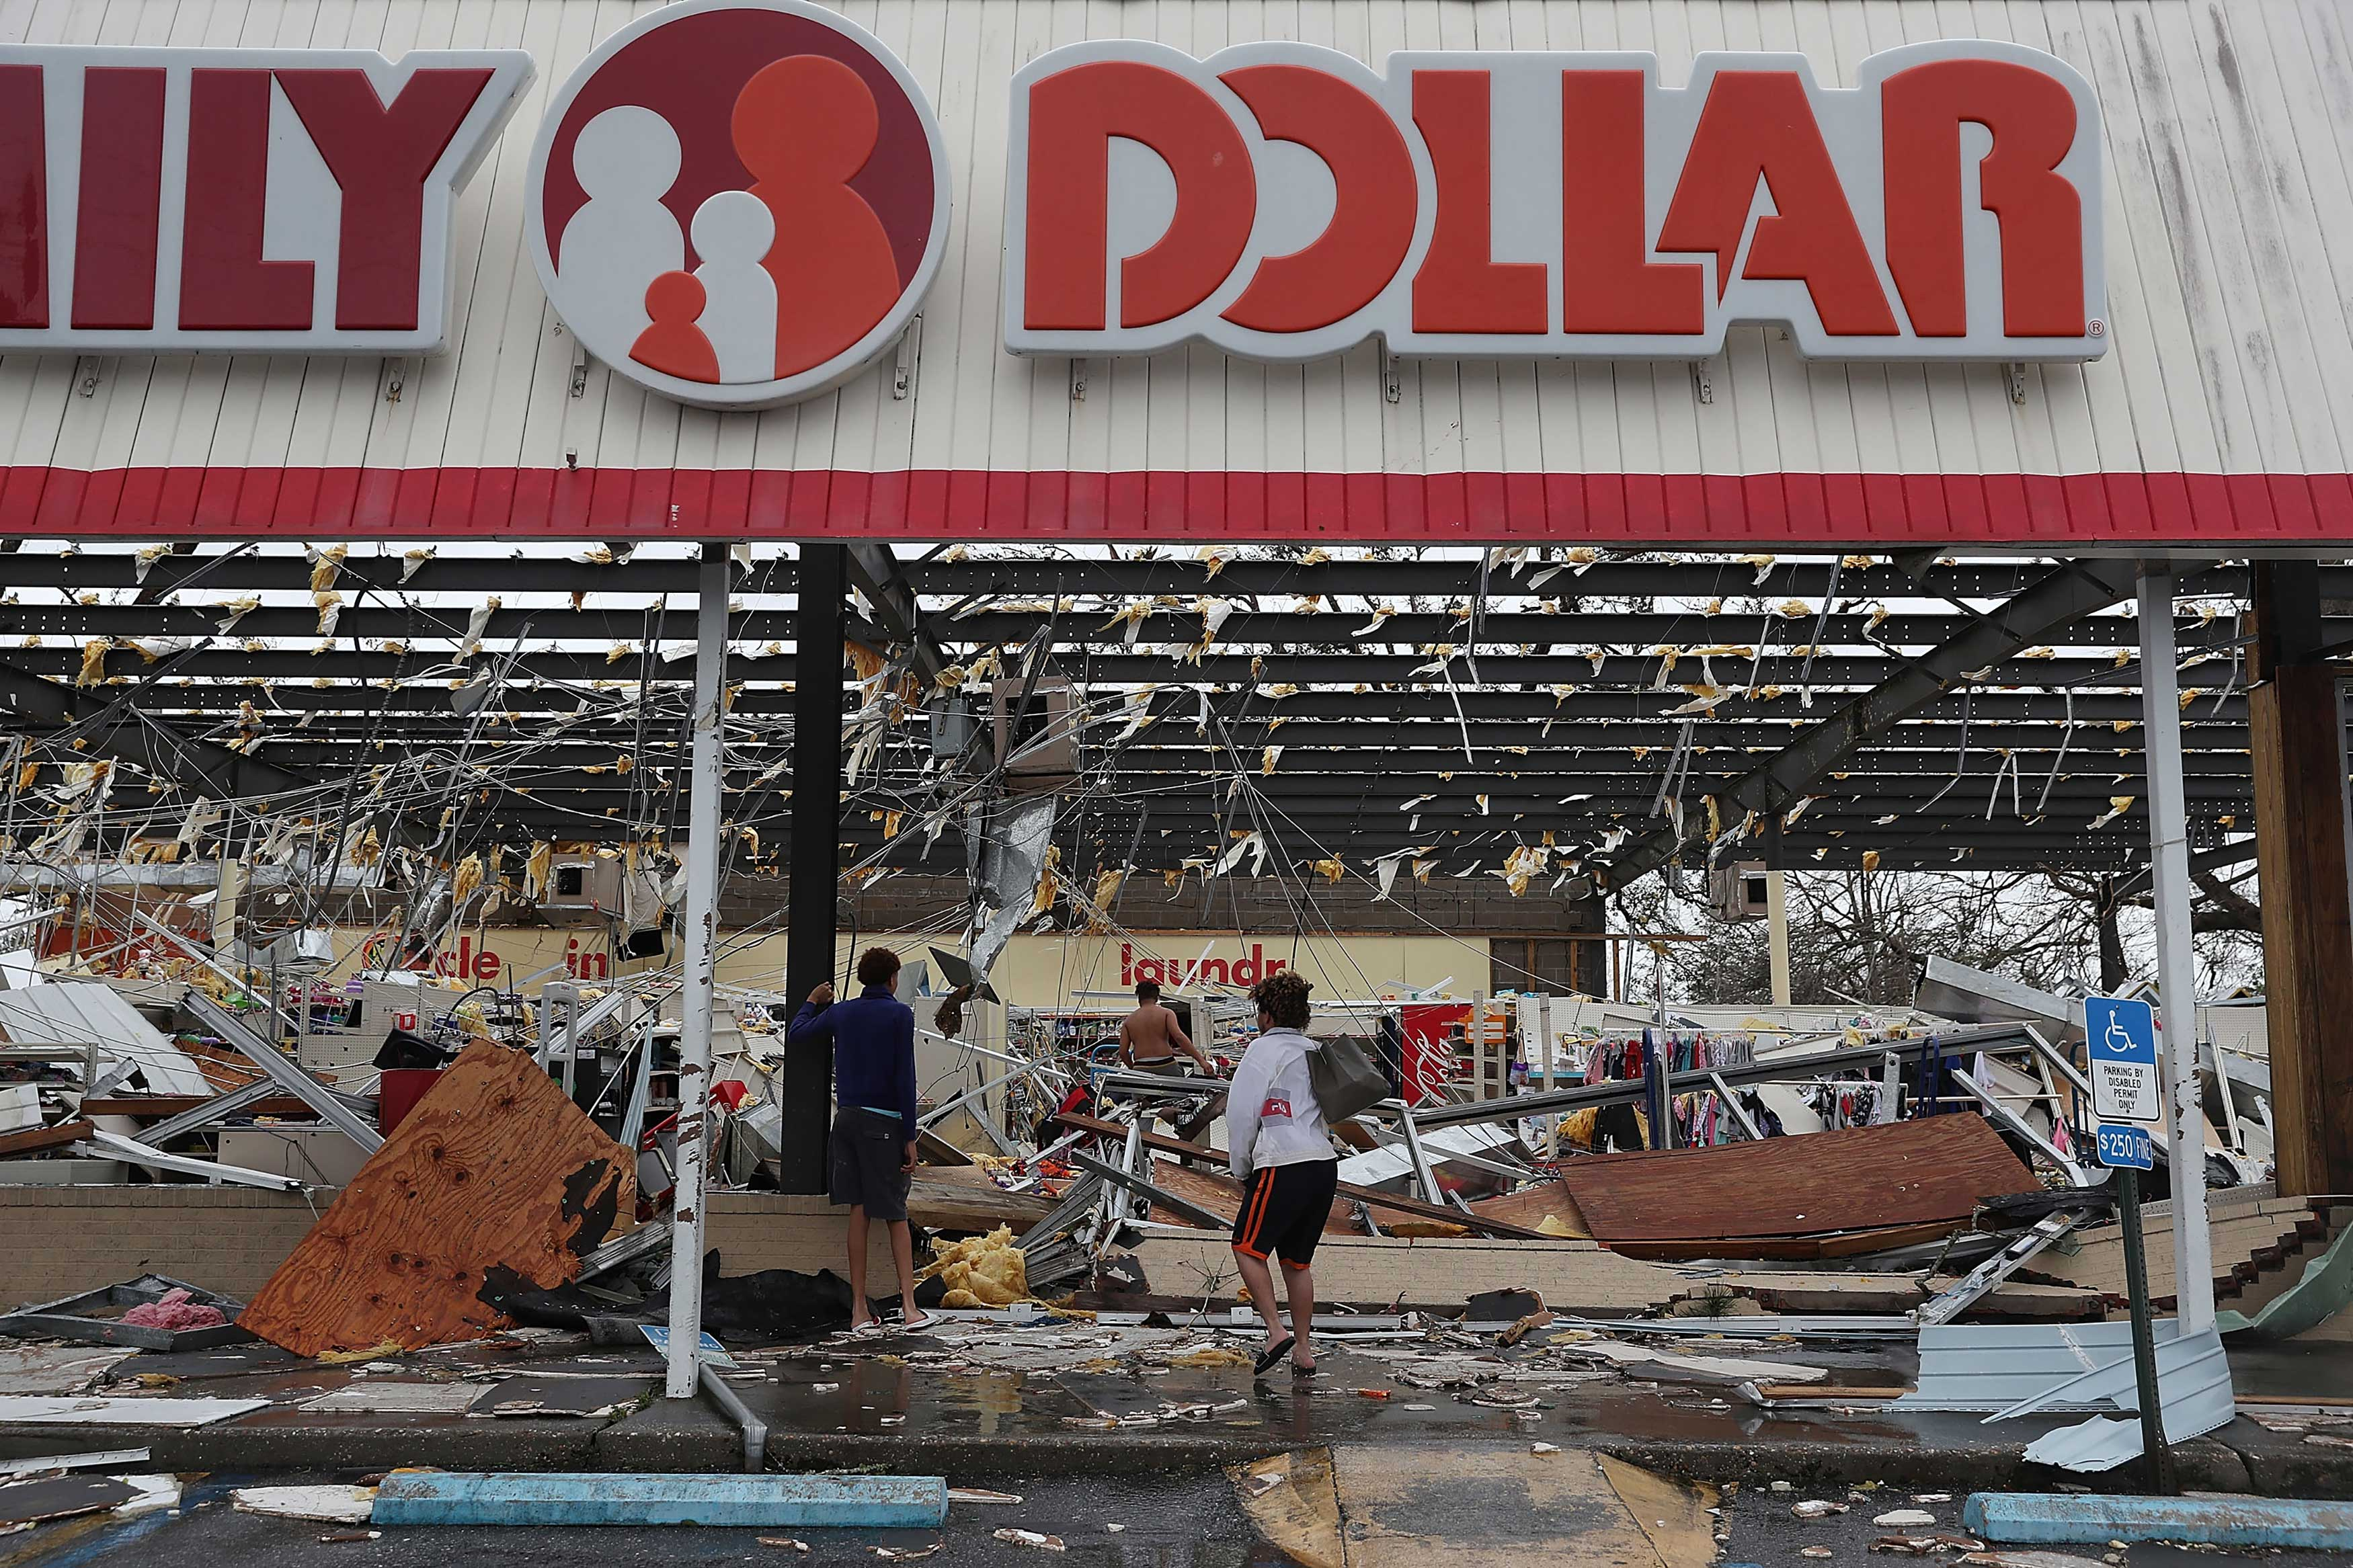 People look on at a damaged store after Hurricane Michael passed through on Oct. 10, 2018 in Panama City, Fla.